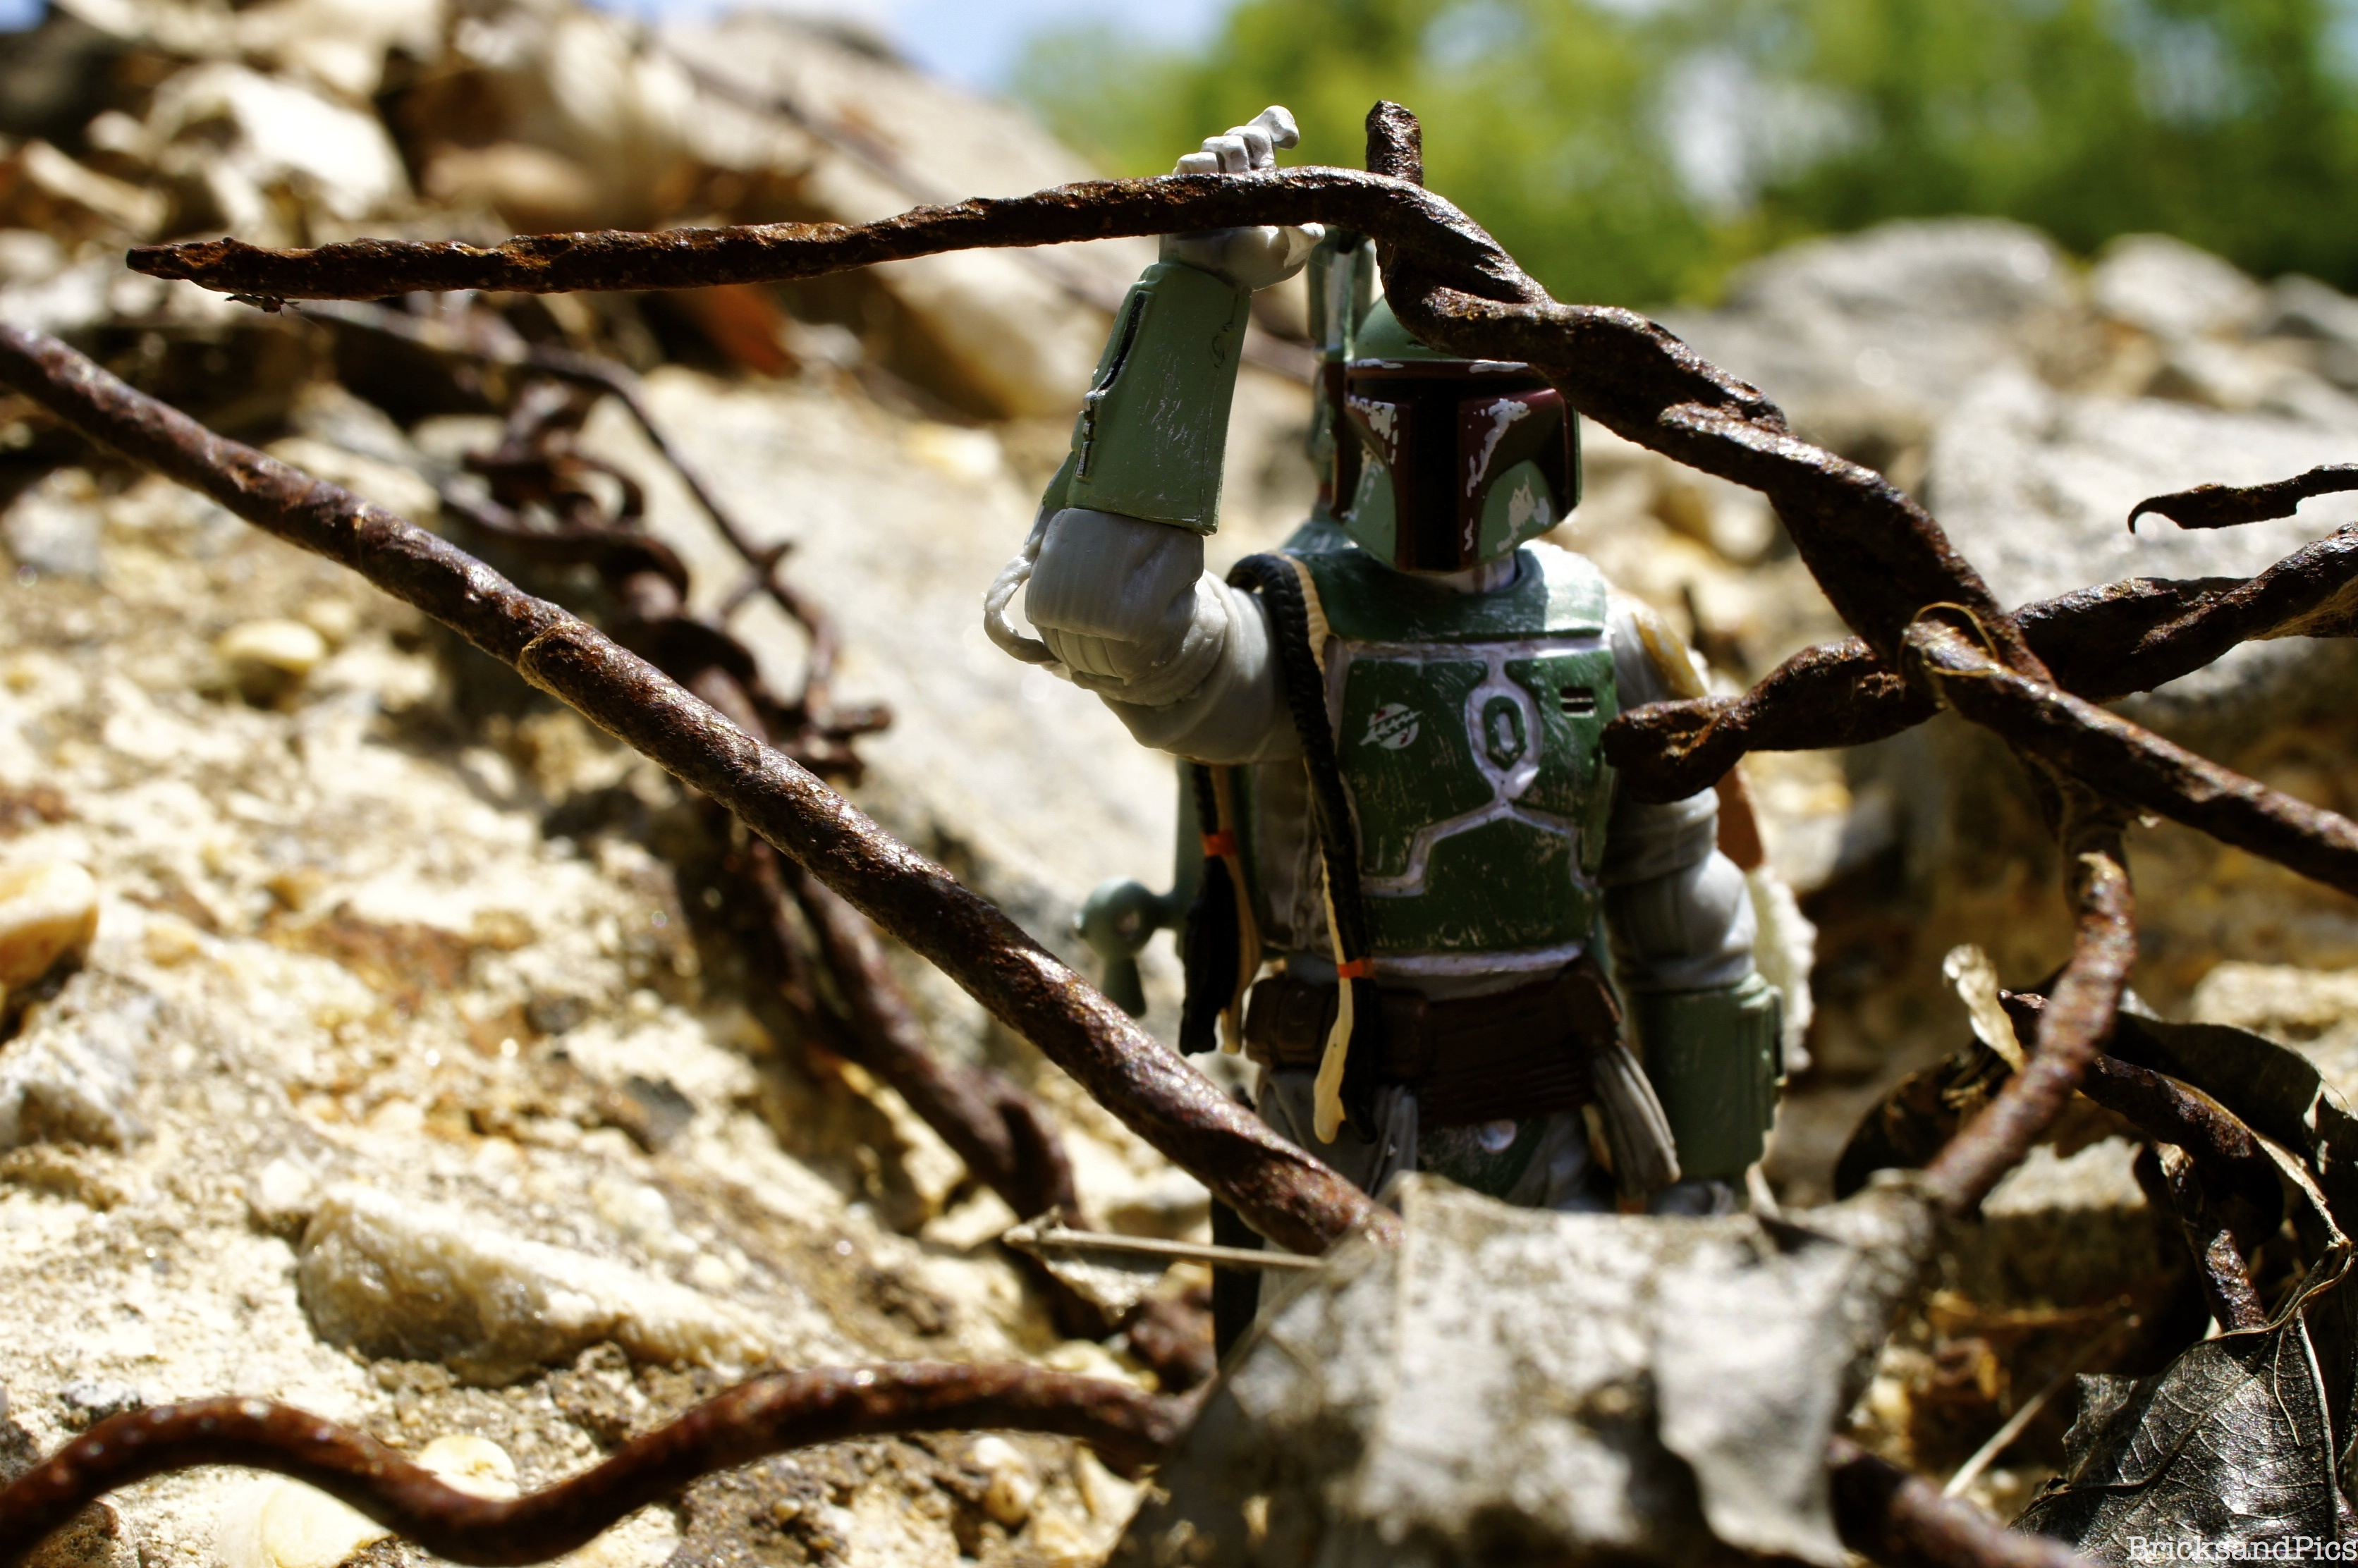 Boba out on thehunt….